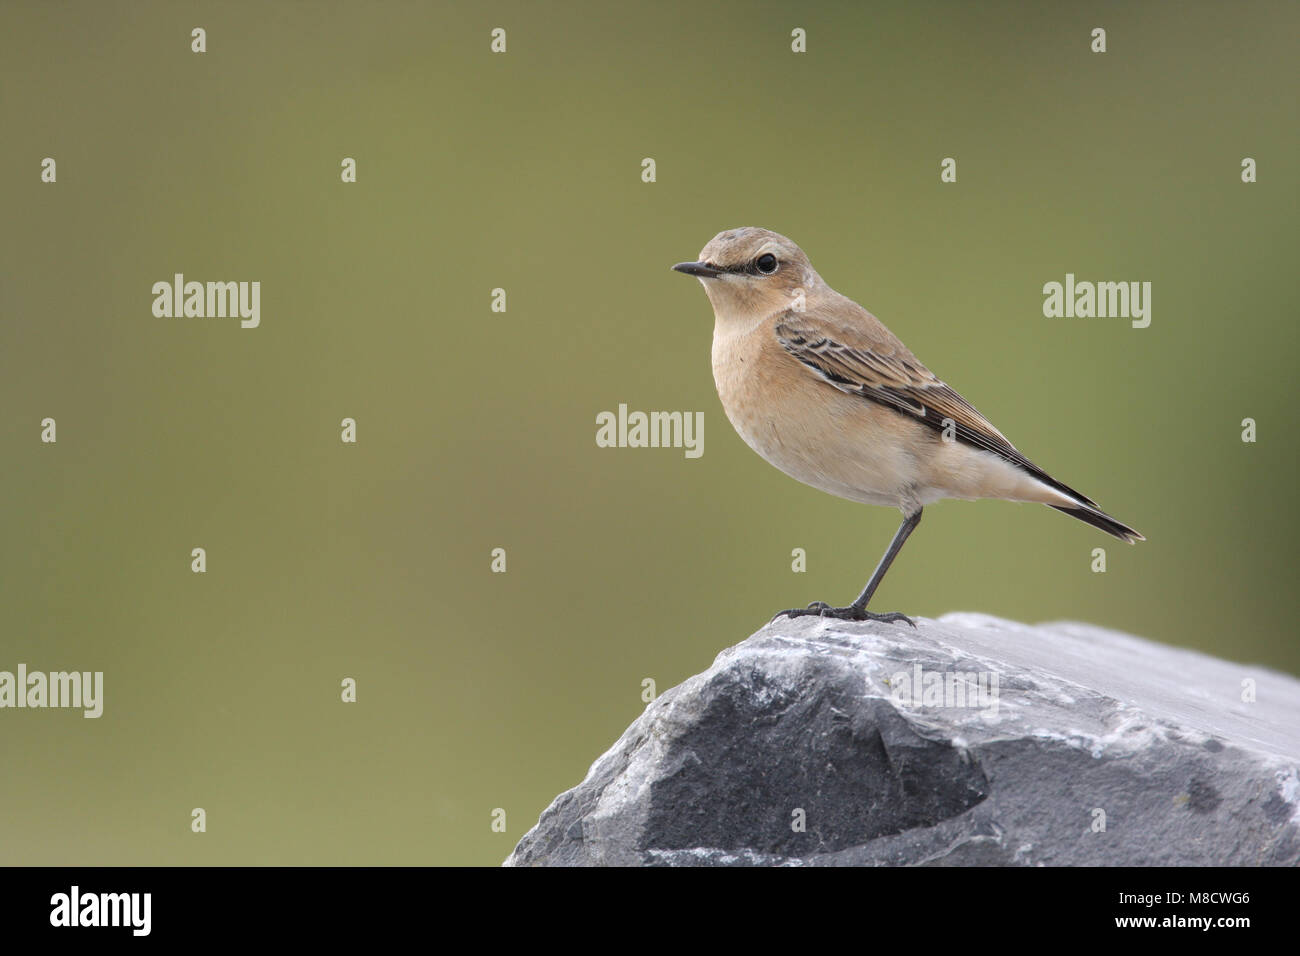 Onvolwassen Tapuit zittend op een steen; Immature Northern Wheatear perched on a rock Stock Photo